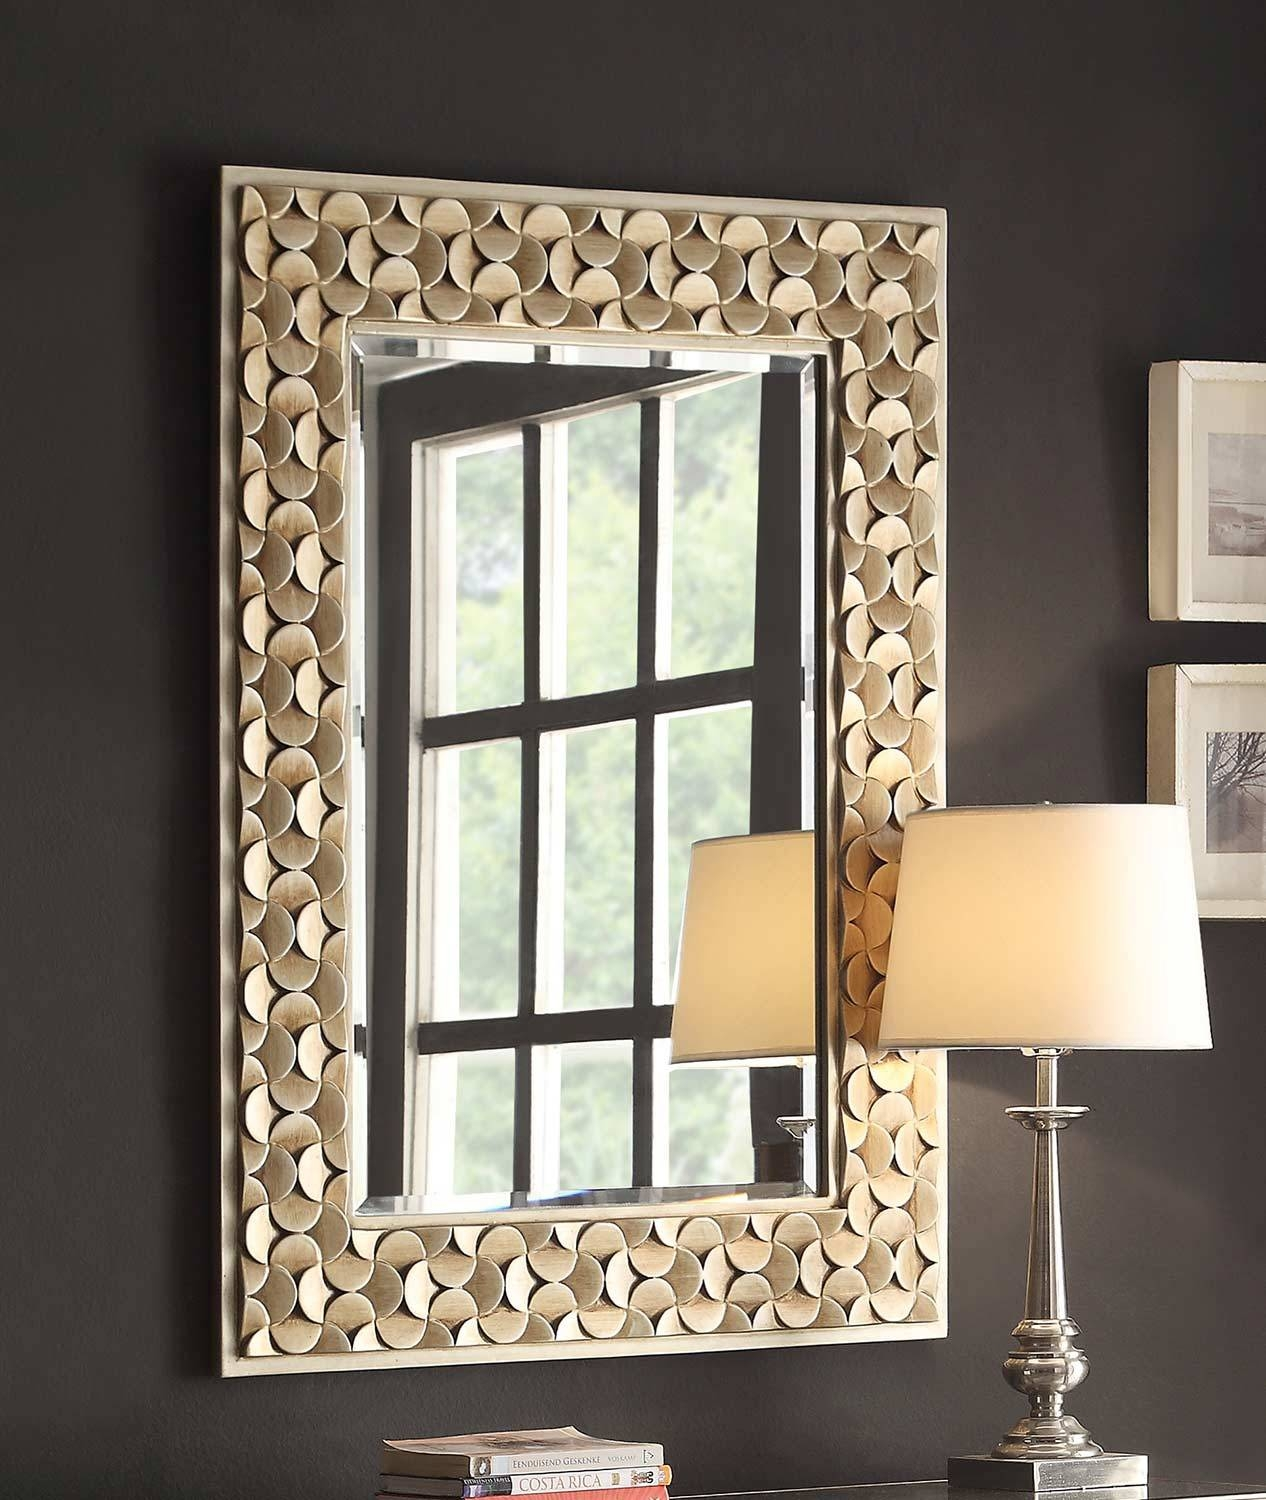 Homelegance Avadore Wall Mirror - Champagne With Mirror Top And inside Champagne Wall Mirrors (Image 11 of 25)